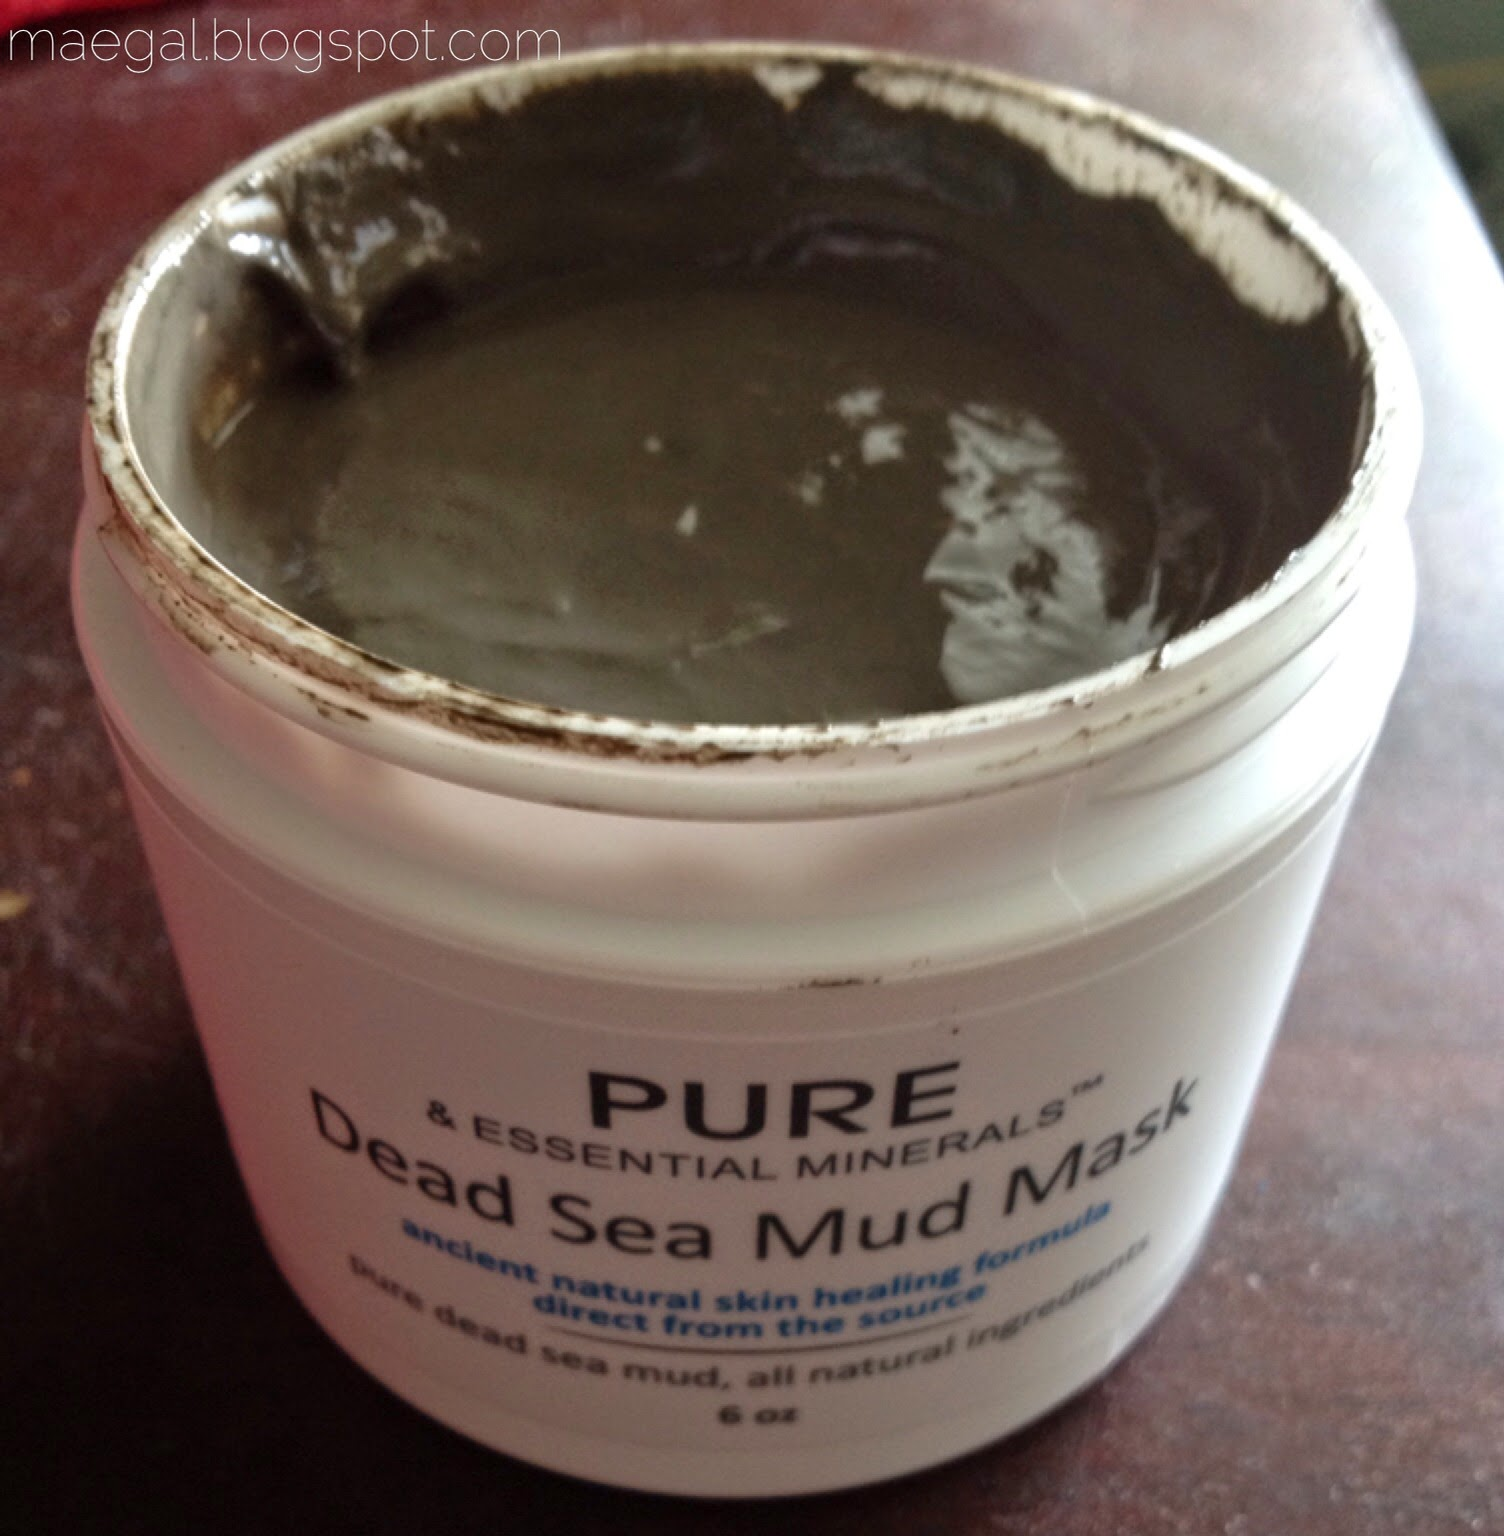 pure dead sea mud mask open | maegal.blogspot.com